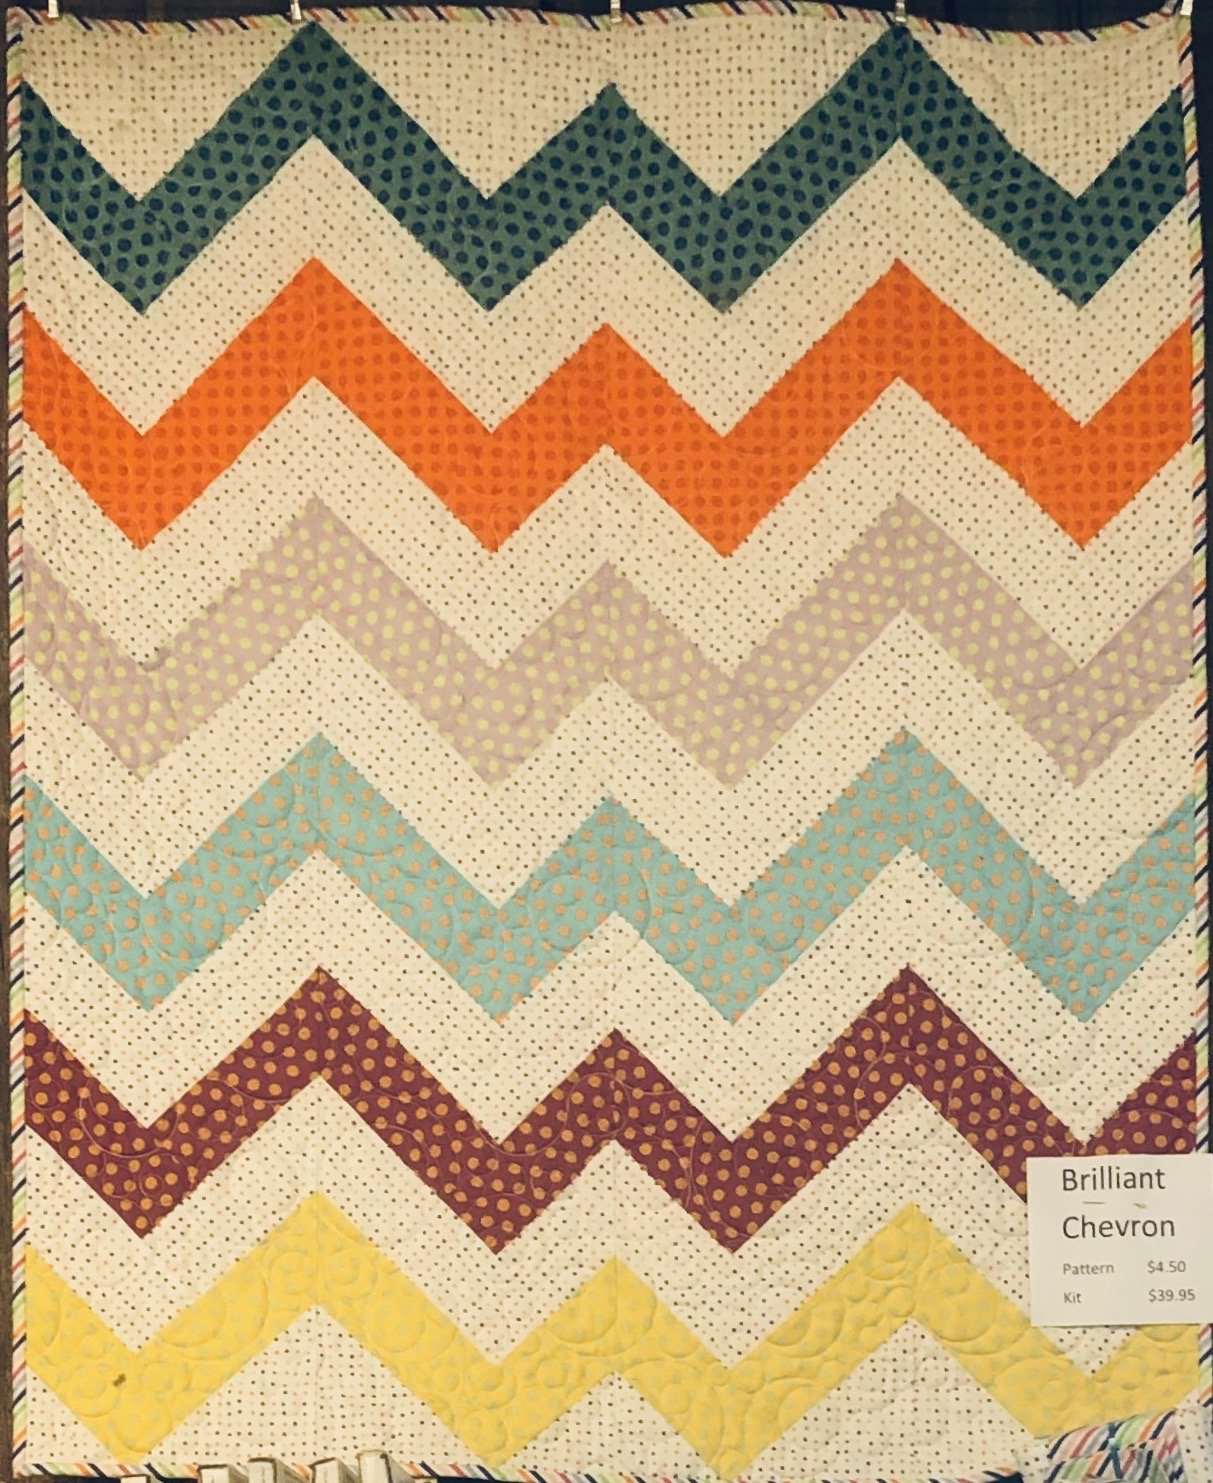 Brilliant Chevron (PATTERN NOT INCLUDED)